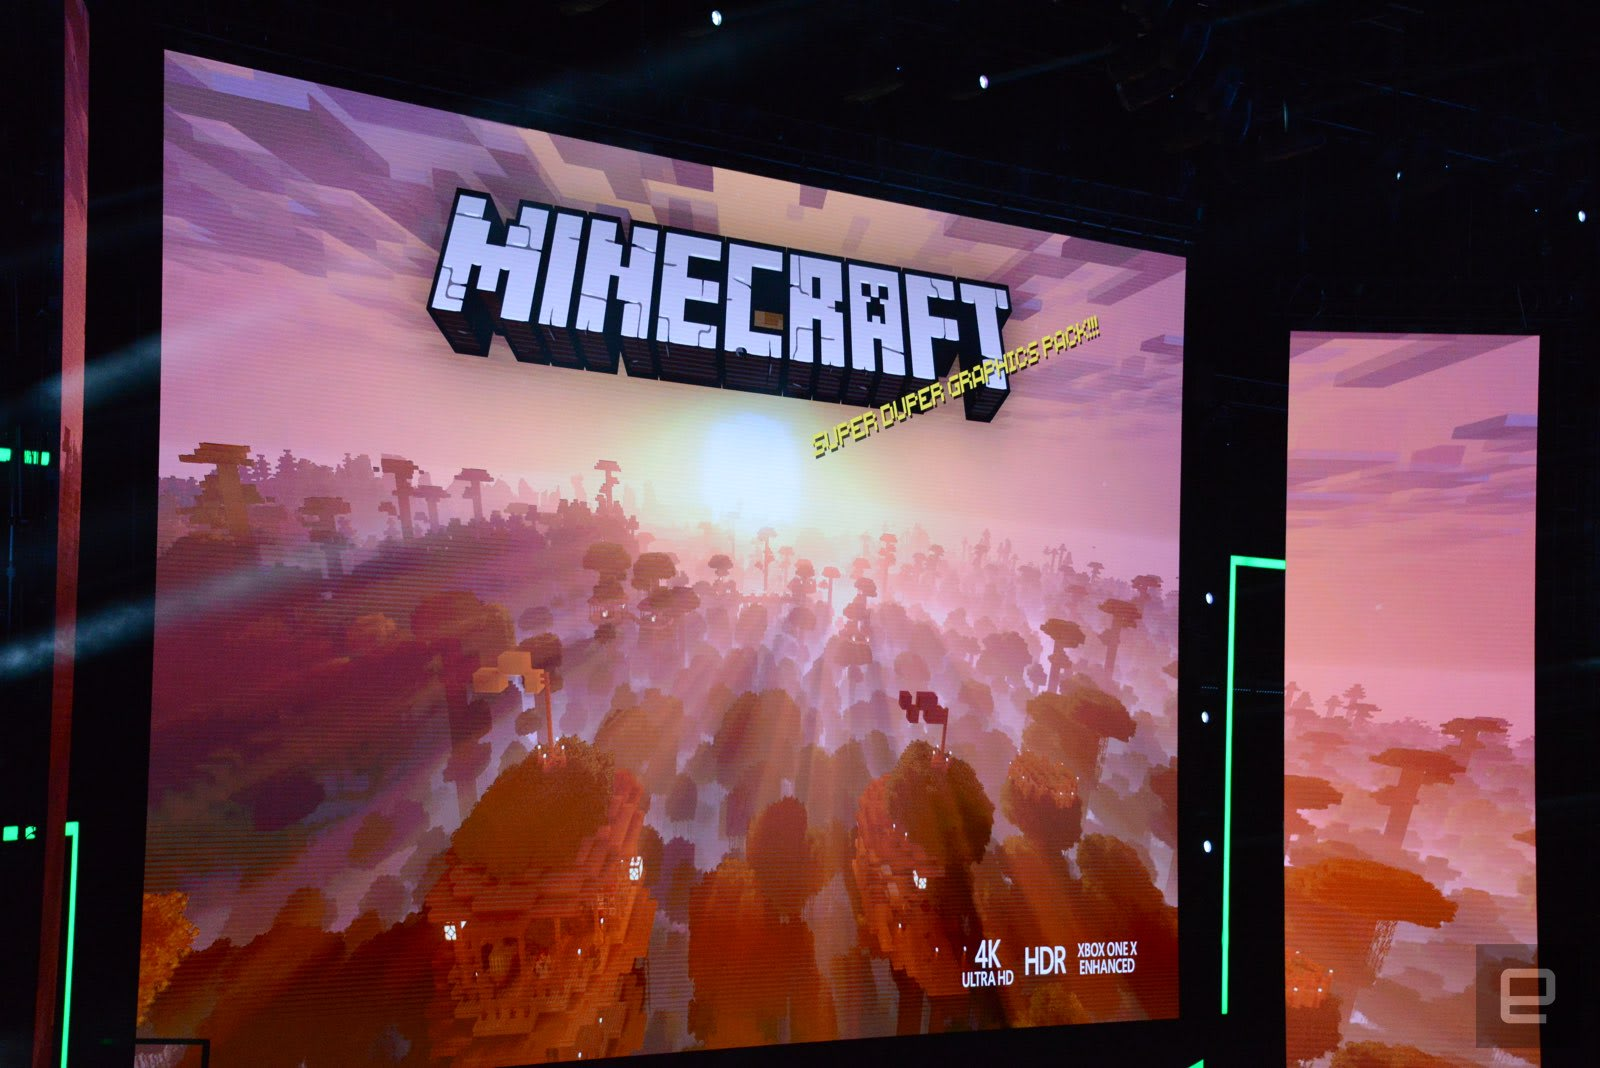 Minecraft' makes the leap to 4K this fall